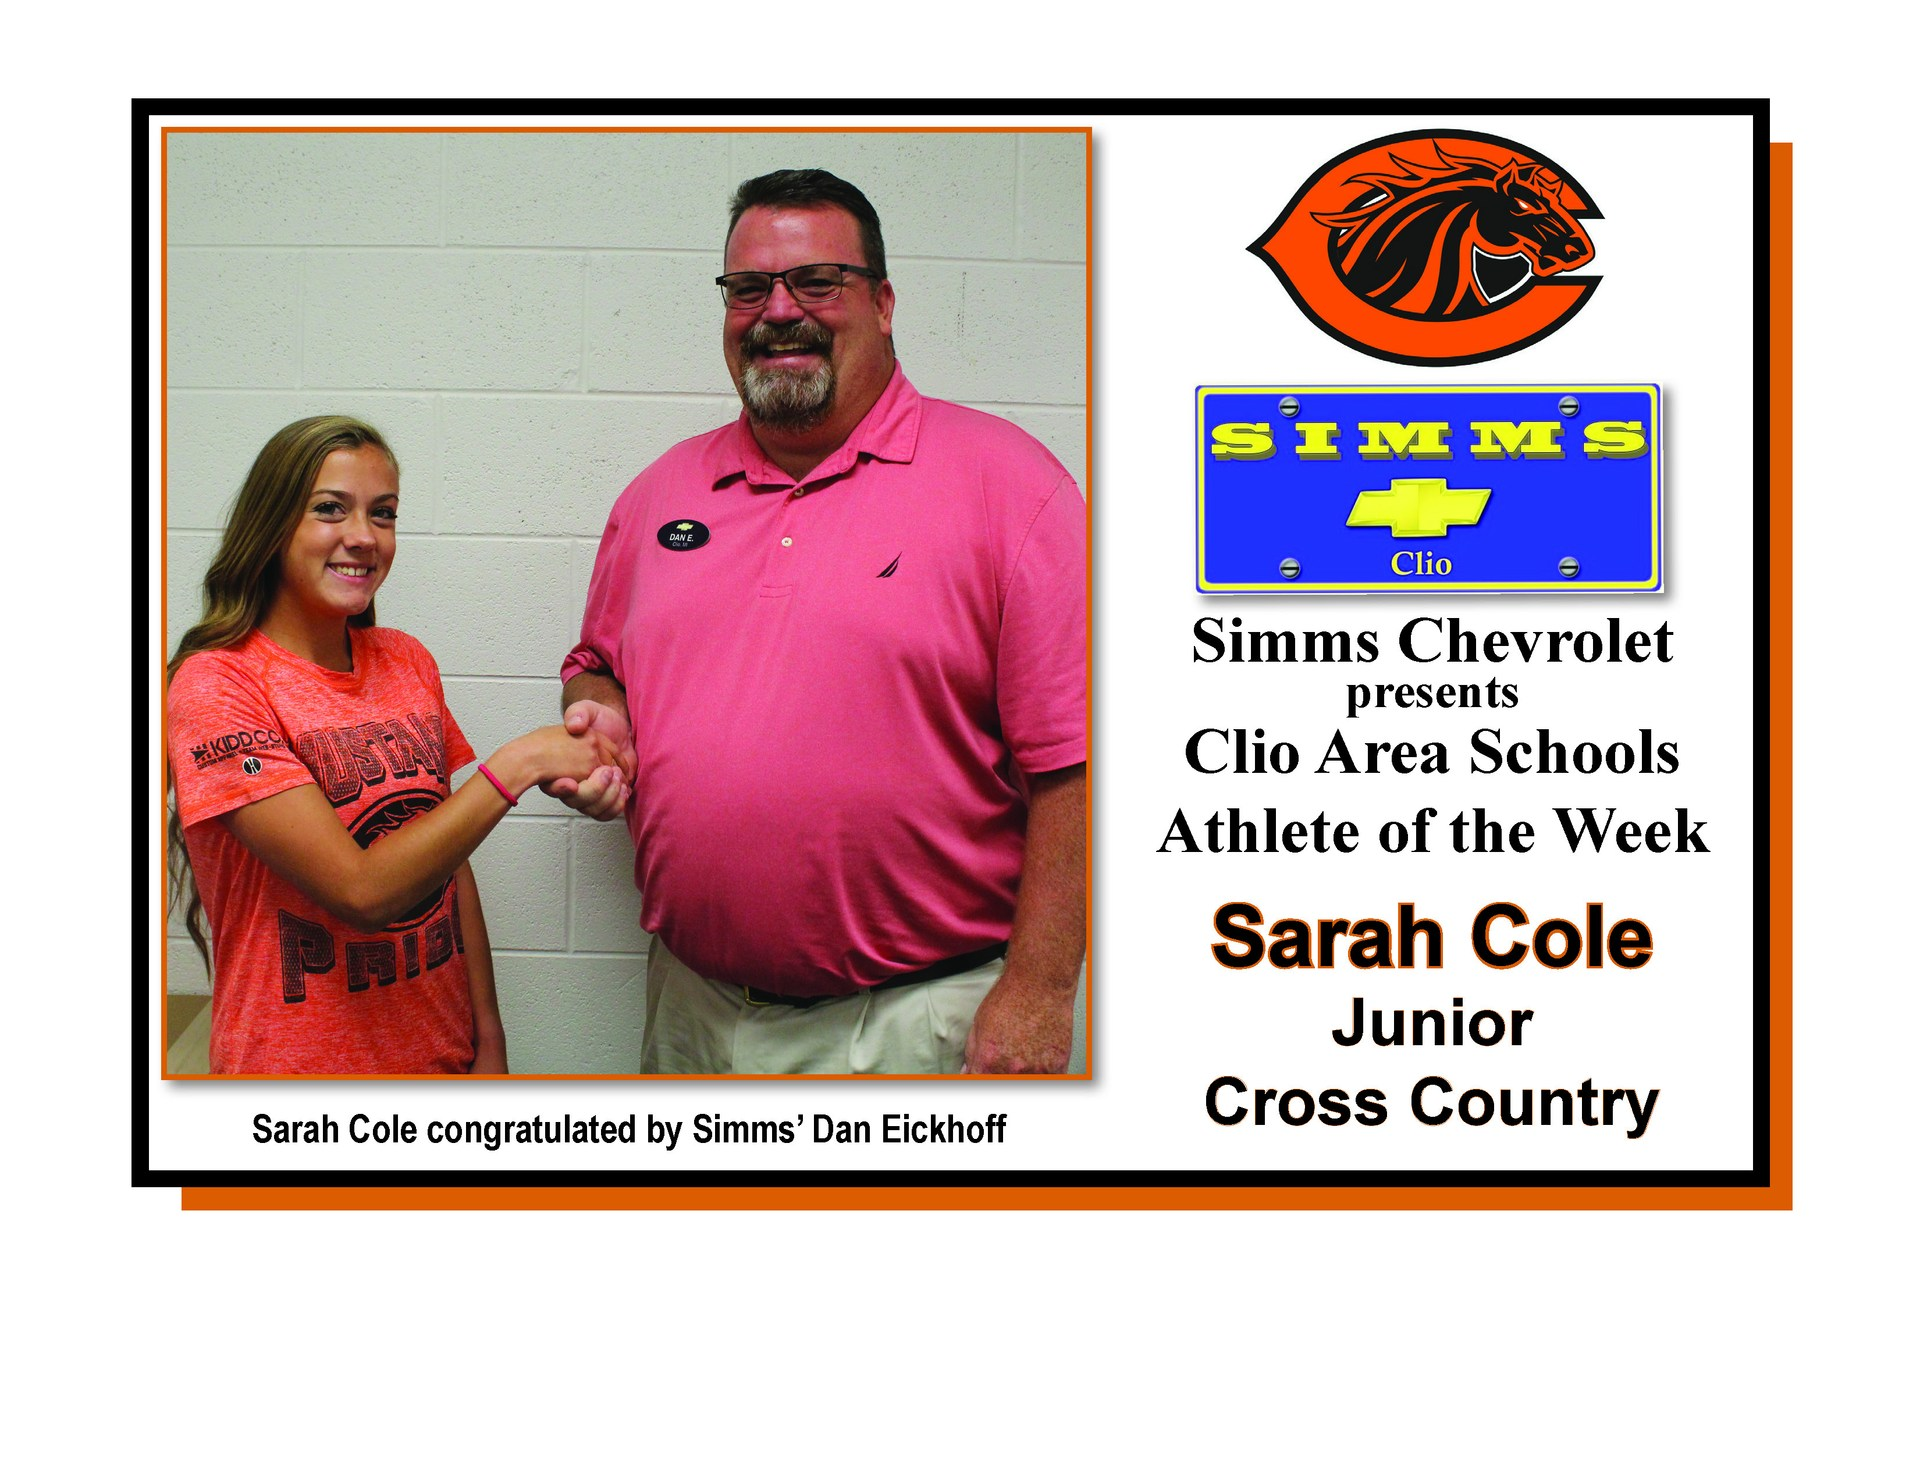 Photo of Sarah Cole receiving Simms Chevrolet Athlete of the Week honors from Dan Eickoff